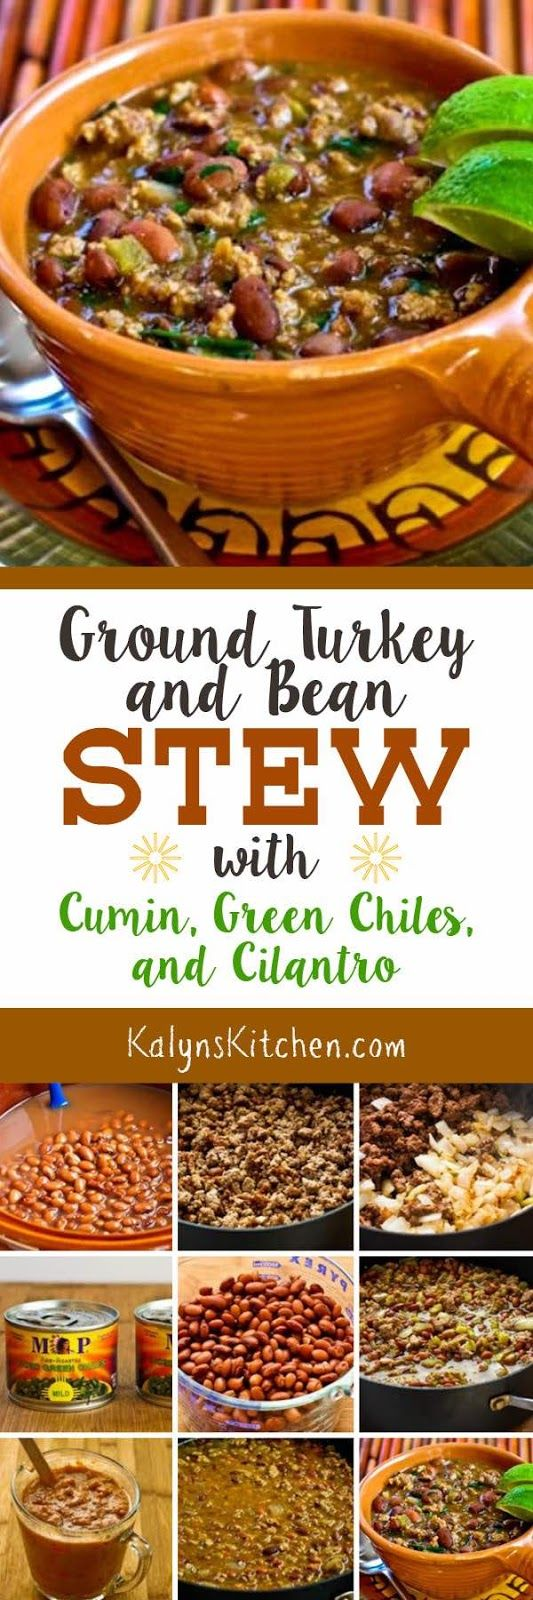 Ground Turkey and Bean Stew with Cumin, Green Chiles, and Cilantro is thickened with refried beans and loaded with Southwestern flavors, and this tasty bean stew is low-glycemic, gluten-free, dairy-free, and South Beach Diet friendly. [found on KalynsKitchen.com]